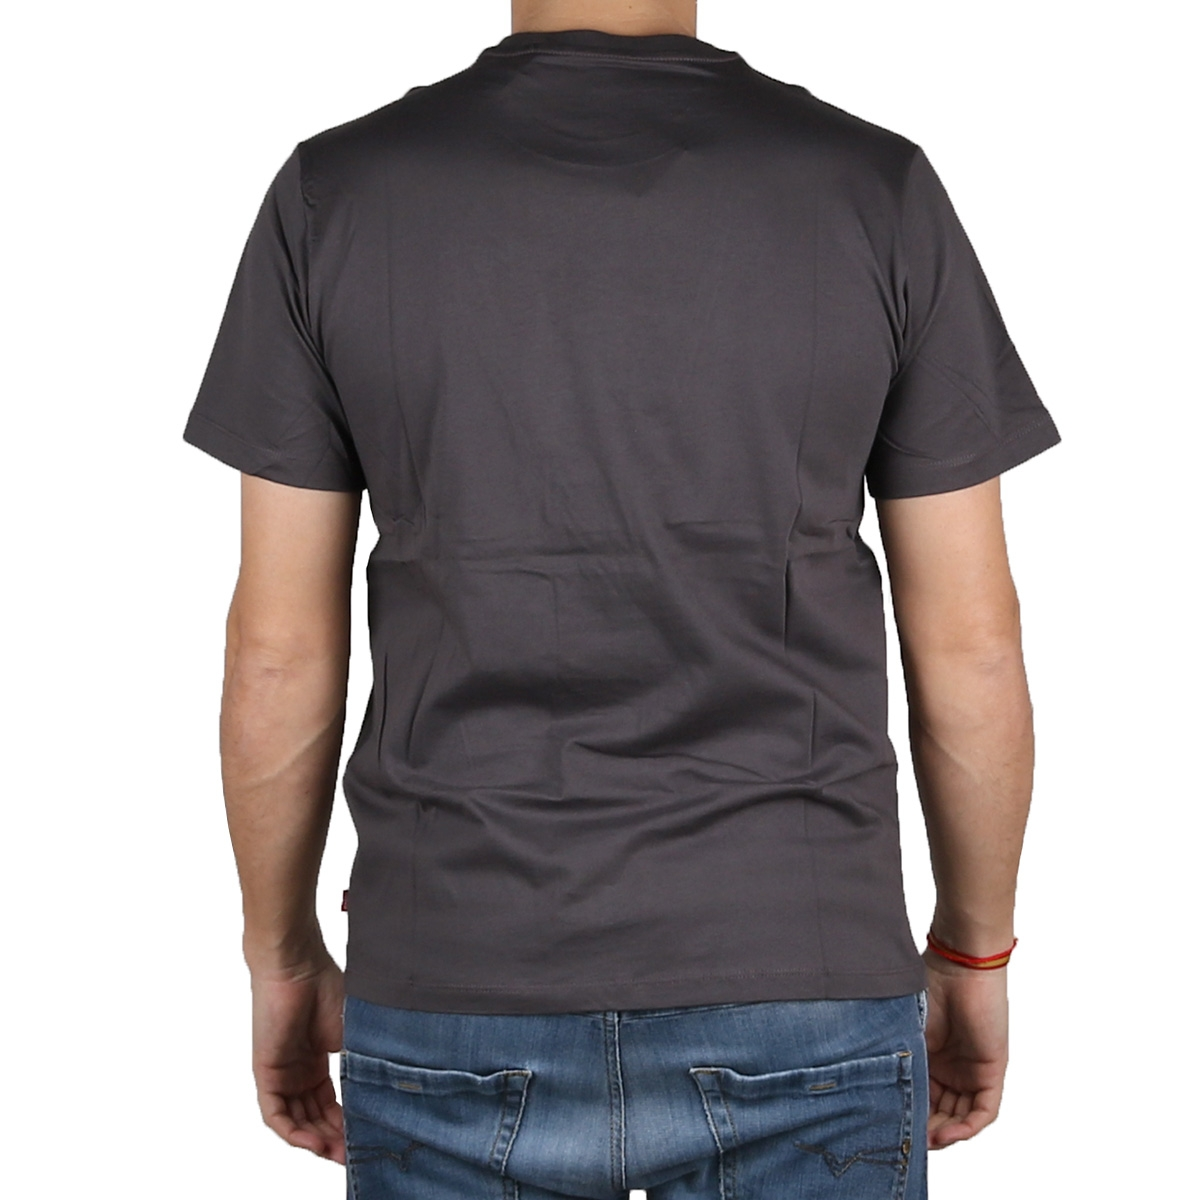 Levis Camiseta Graphic Tee Housemark BLACK - SSNL FORGE IRON Gris Negro Hombre